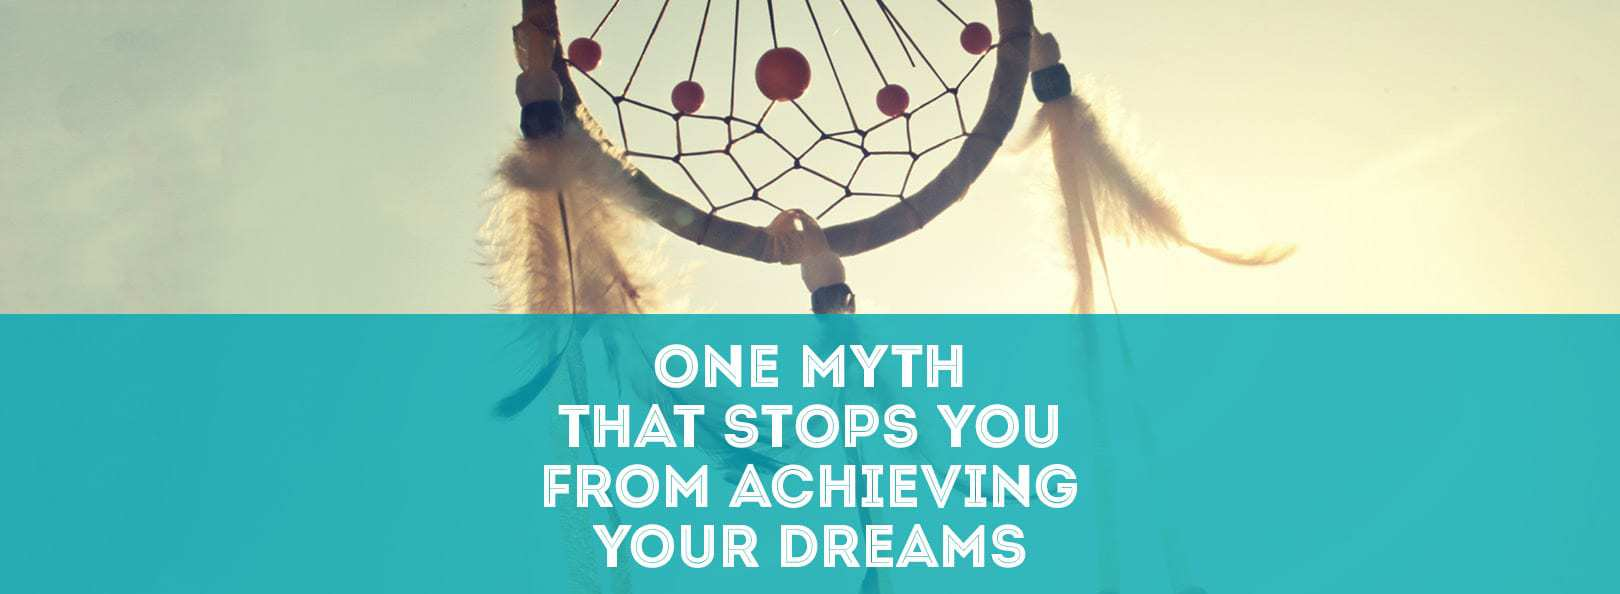 One Myth That Stops You From Achieving Your Dreams